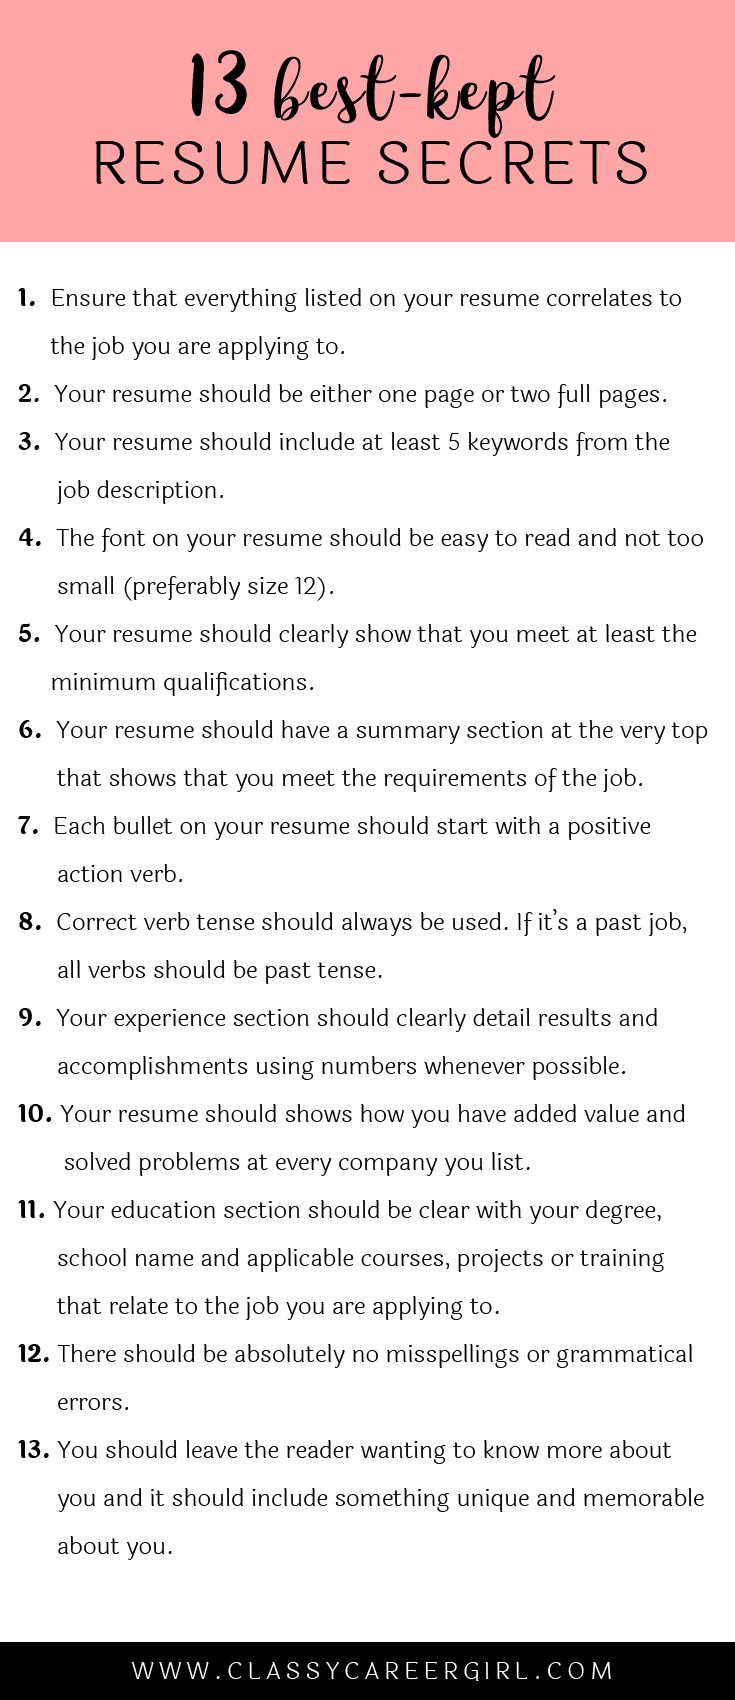 Opposenewapstandardsus  Sweet  Ideas About Resume On Pinterest  Cv Format Resume Cv And  With Excellent Some Hiring Managers Will Toss Your Resume Out If You Dont Know These  With Alluring Traditional Resume Format Also How To Write A Theatre Resume In Addition Resume Templates Indesign And Build Your Own Resume Free As Well As Self Employment On Resume Additionally Create My Free Resume From Pinterestcom With Opposenewapstandardsus  Excellent  Ideas About Resume On Pinterest  Cv Format Resume Cv And  With Alluring Some Hiring Managers Will Toss Your Resume Out If You Dont Know These  And Sweet Traditional Resume Format Also How To Write A Theatre Resume In Addition Resume Templates Indesign From Pinterestcom